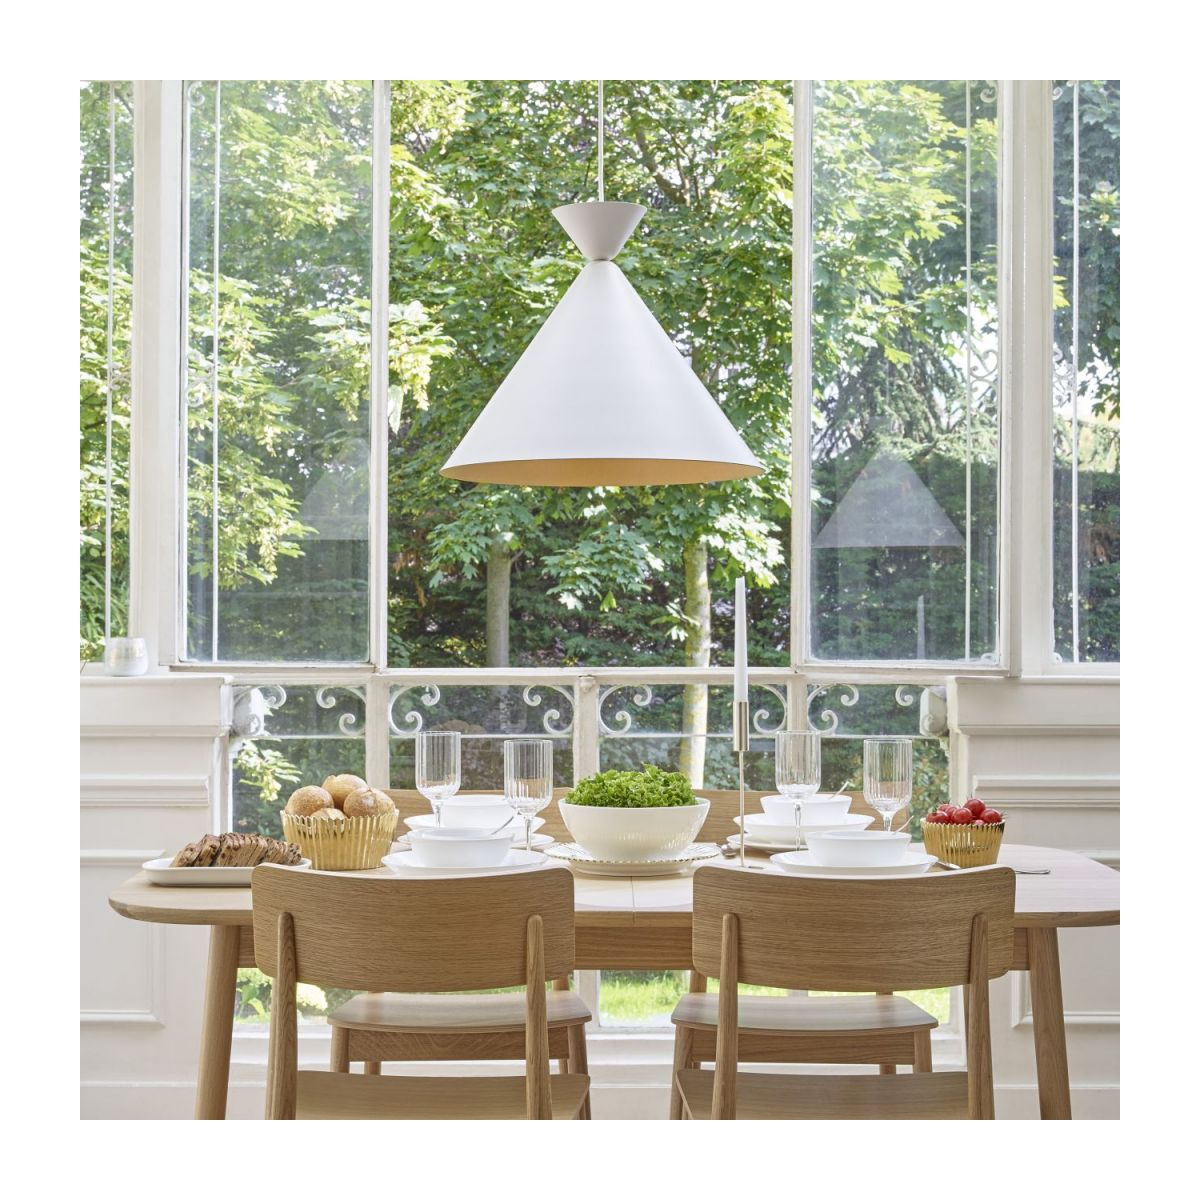 Triangular ceiling lamp, white and copper n°3